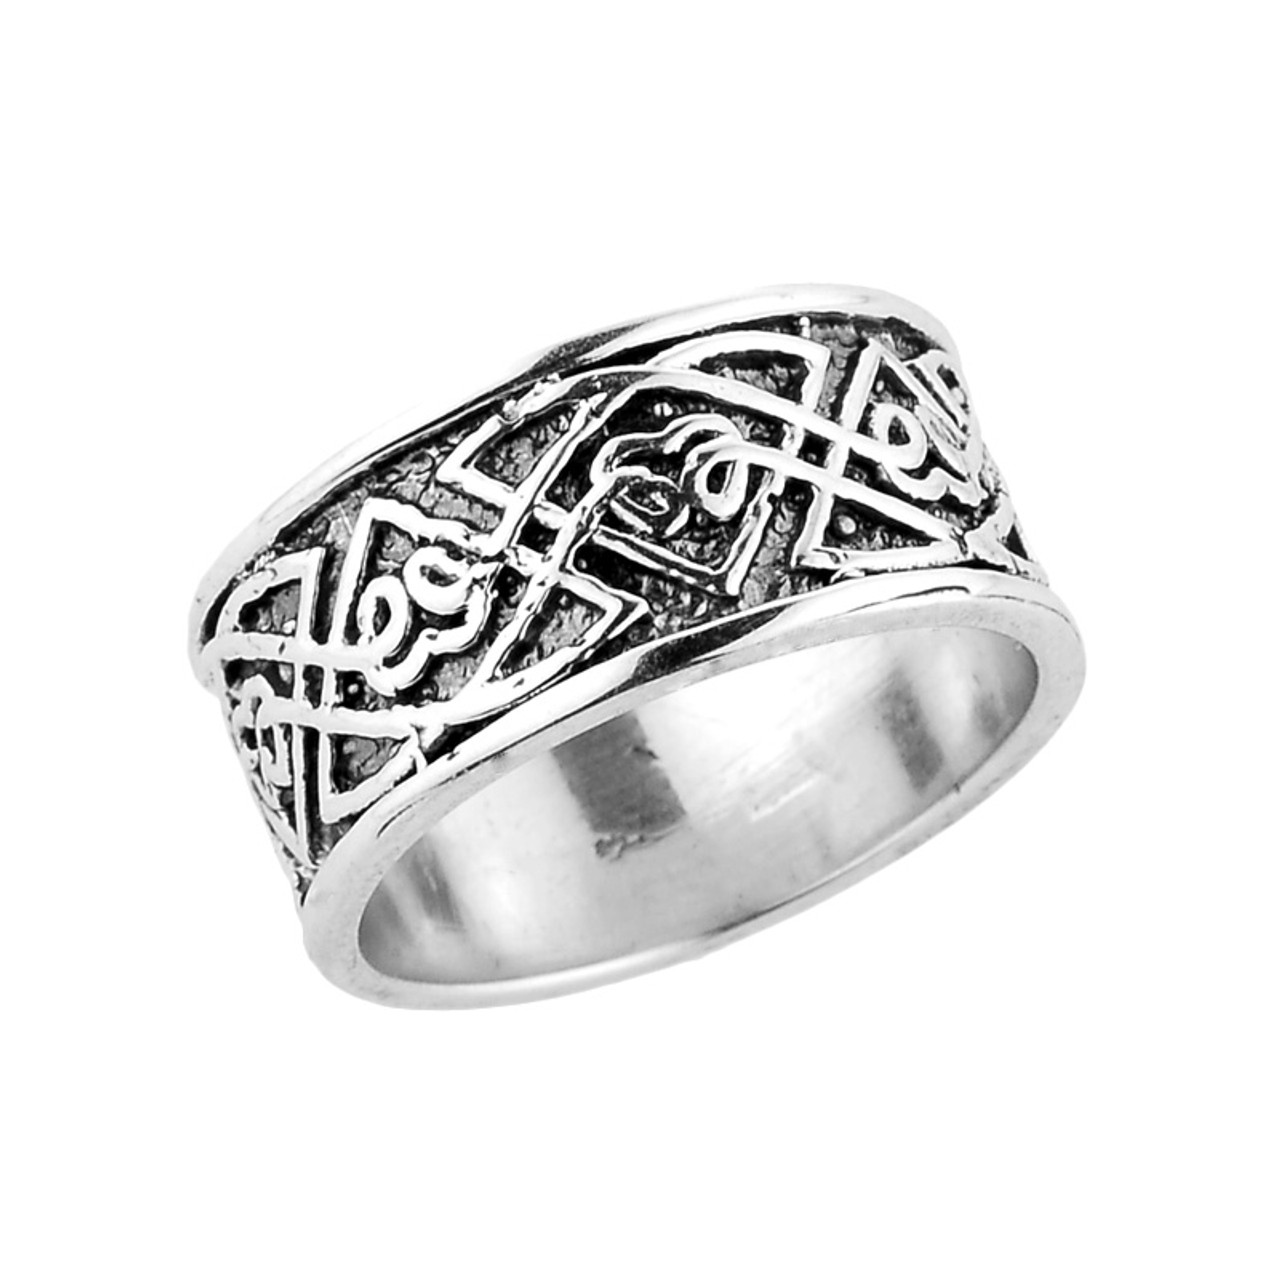 Celtic Knot Wedding Bands.Sterling Silver Comfort Fit Celtic Knot Wedding Band